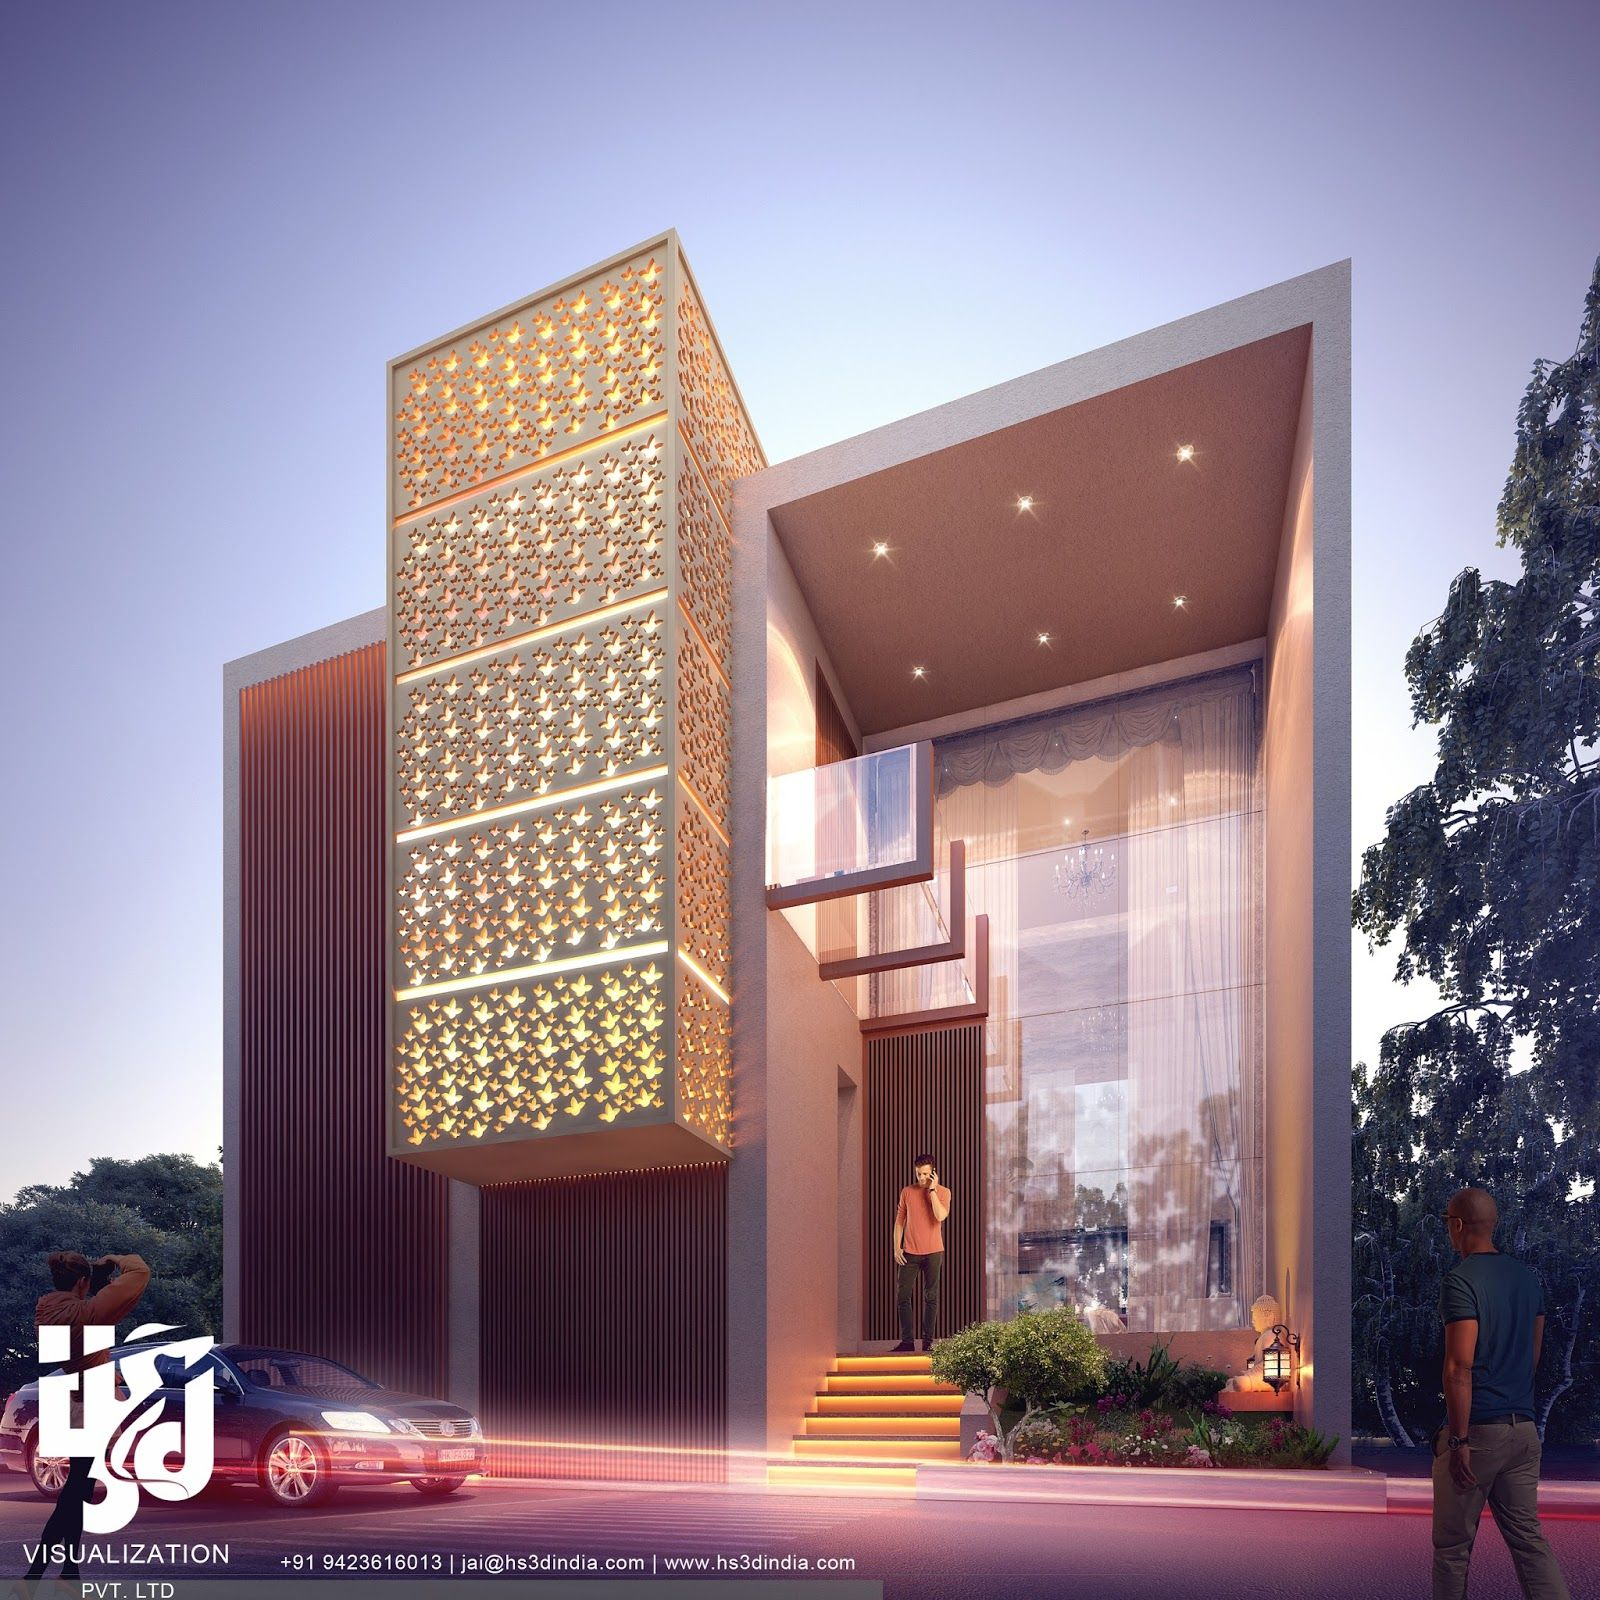 Bungalow 3d Rendering Contemporary Bungalow Rendering: 3D ARCHITECTURAL VISUALIZATION: 3D EXTERIOR NIGHT